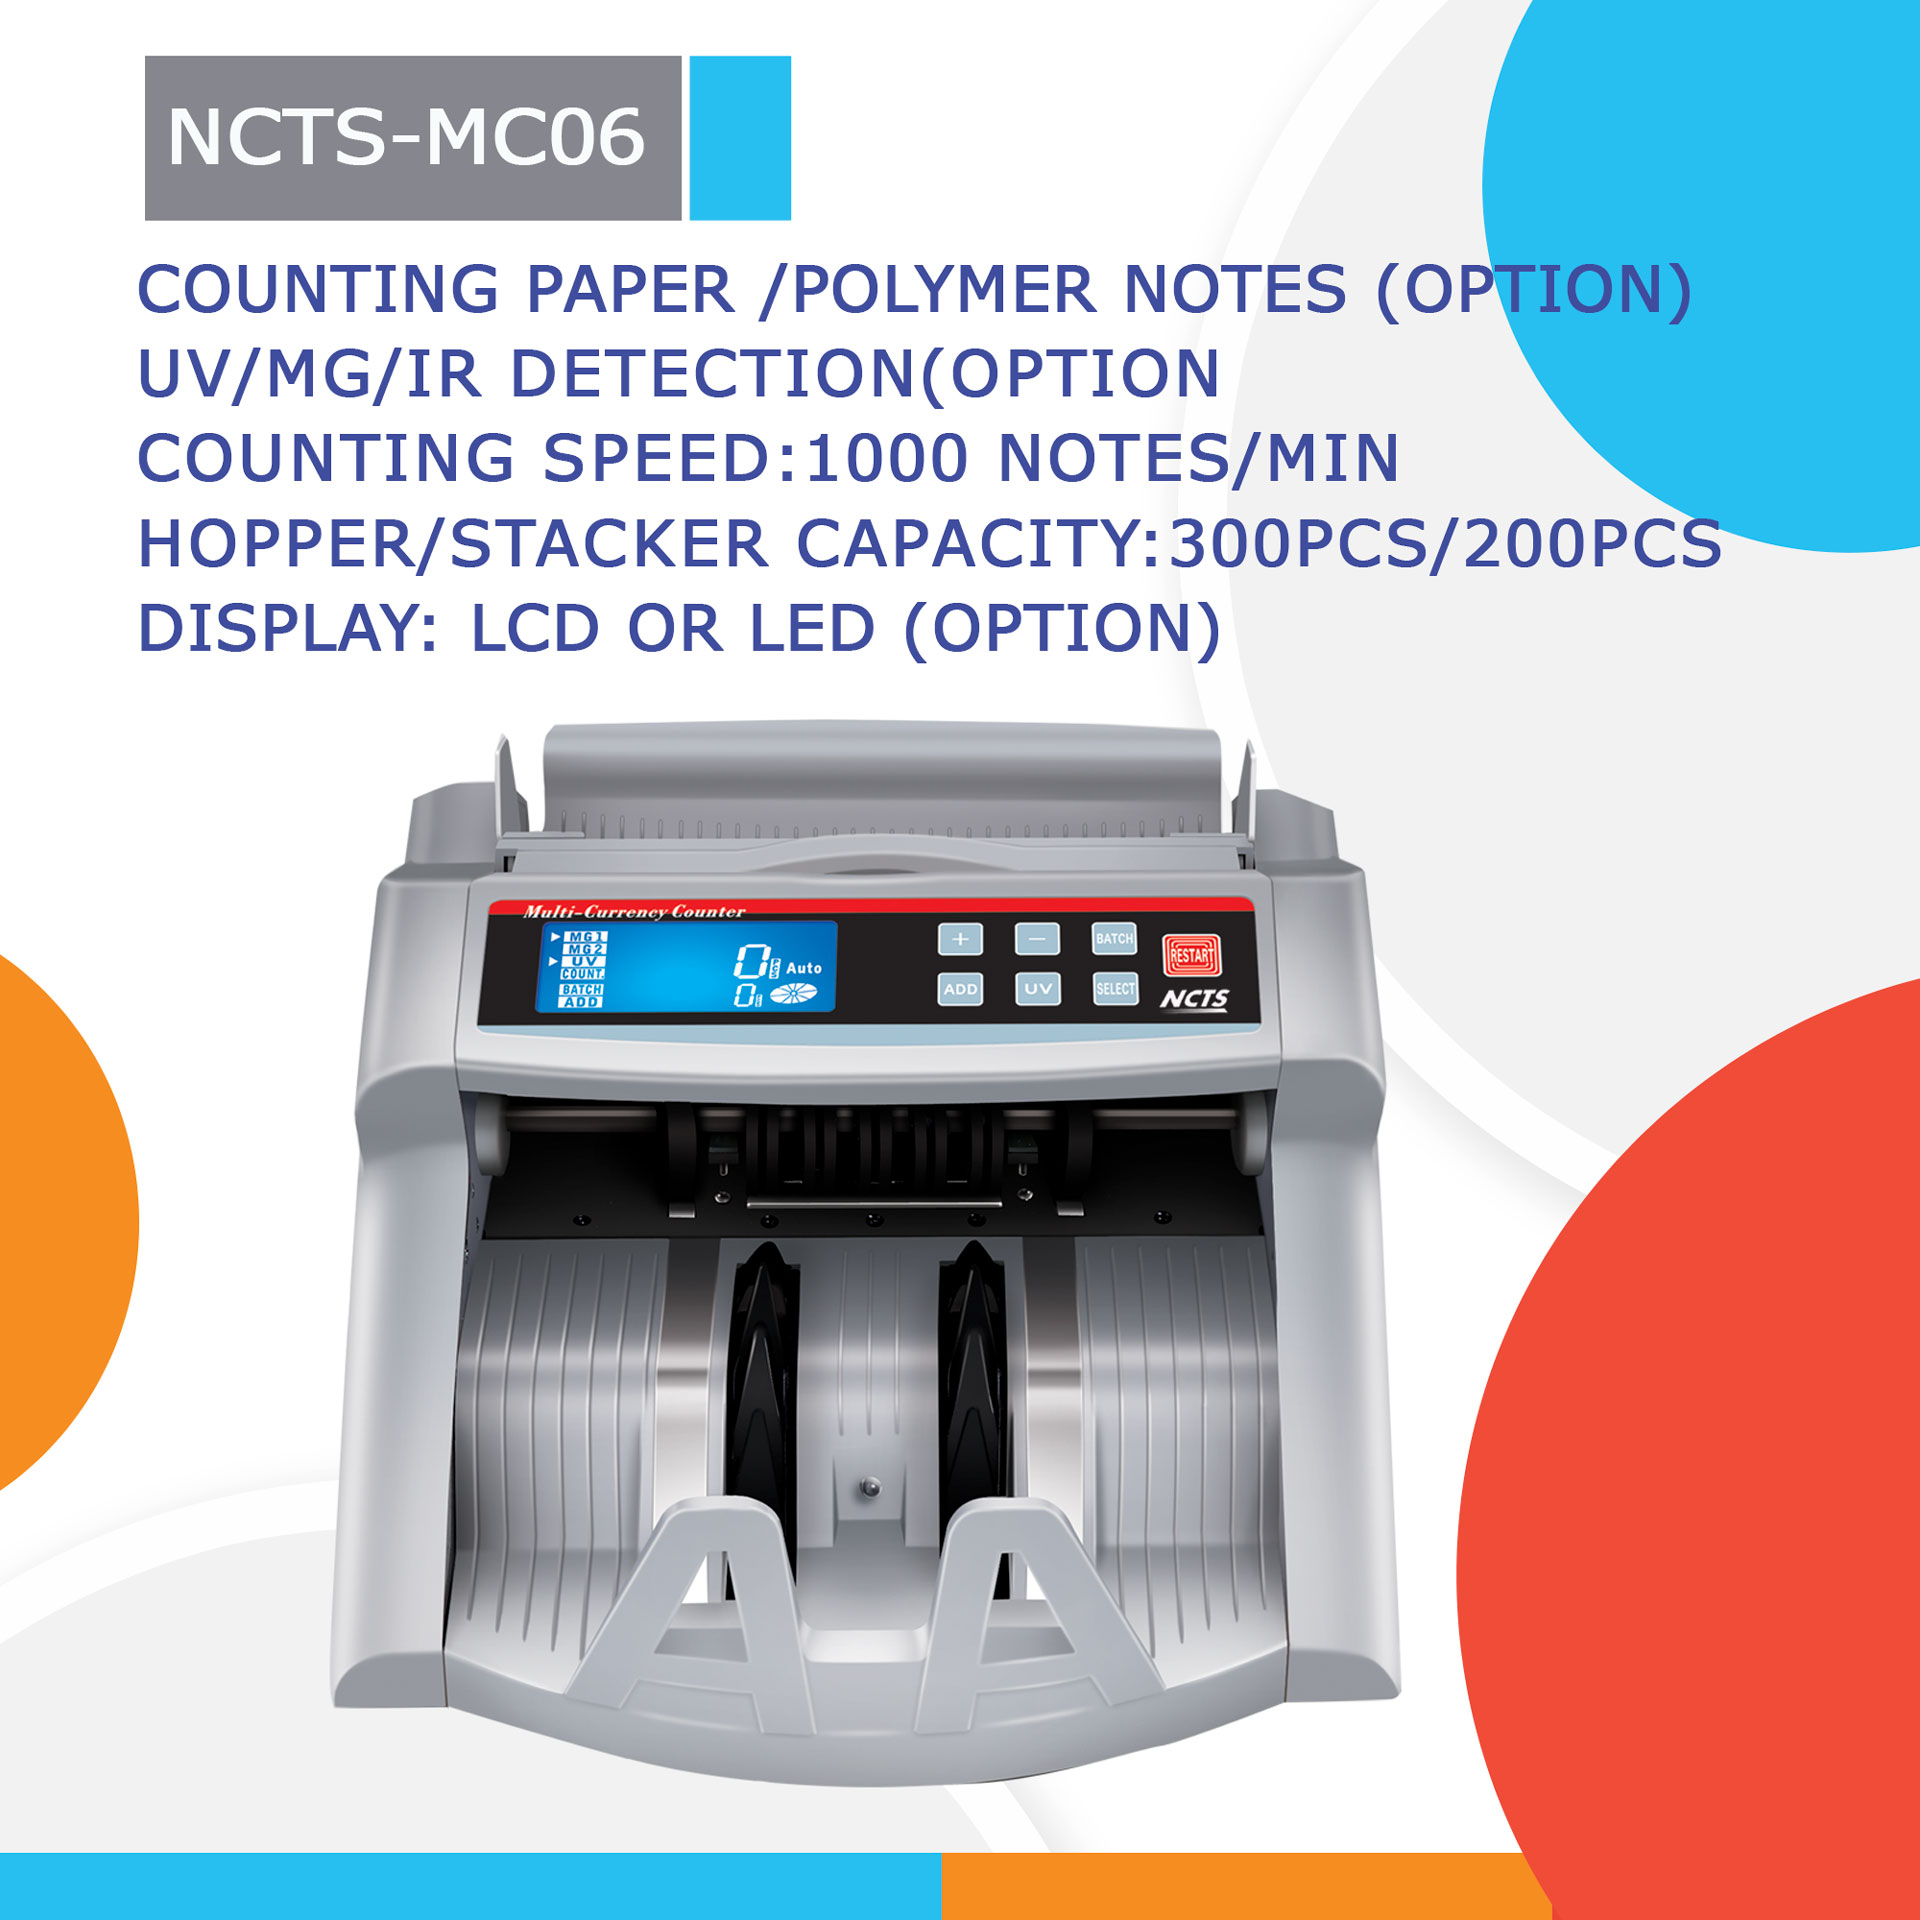 NCTS-MC06